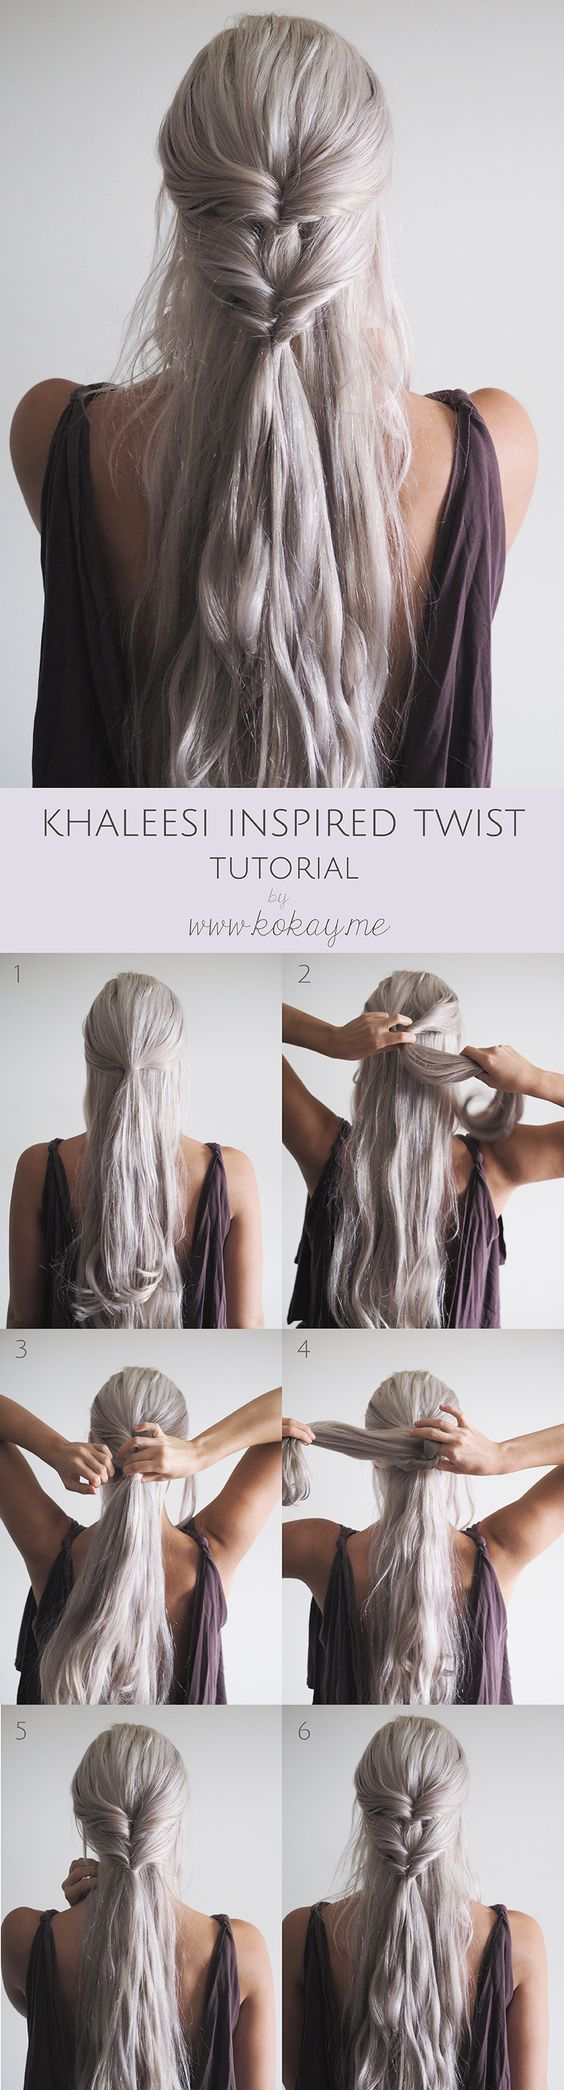 Khaleesi inspired half twist: